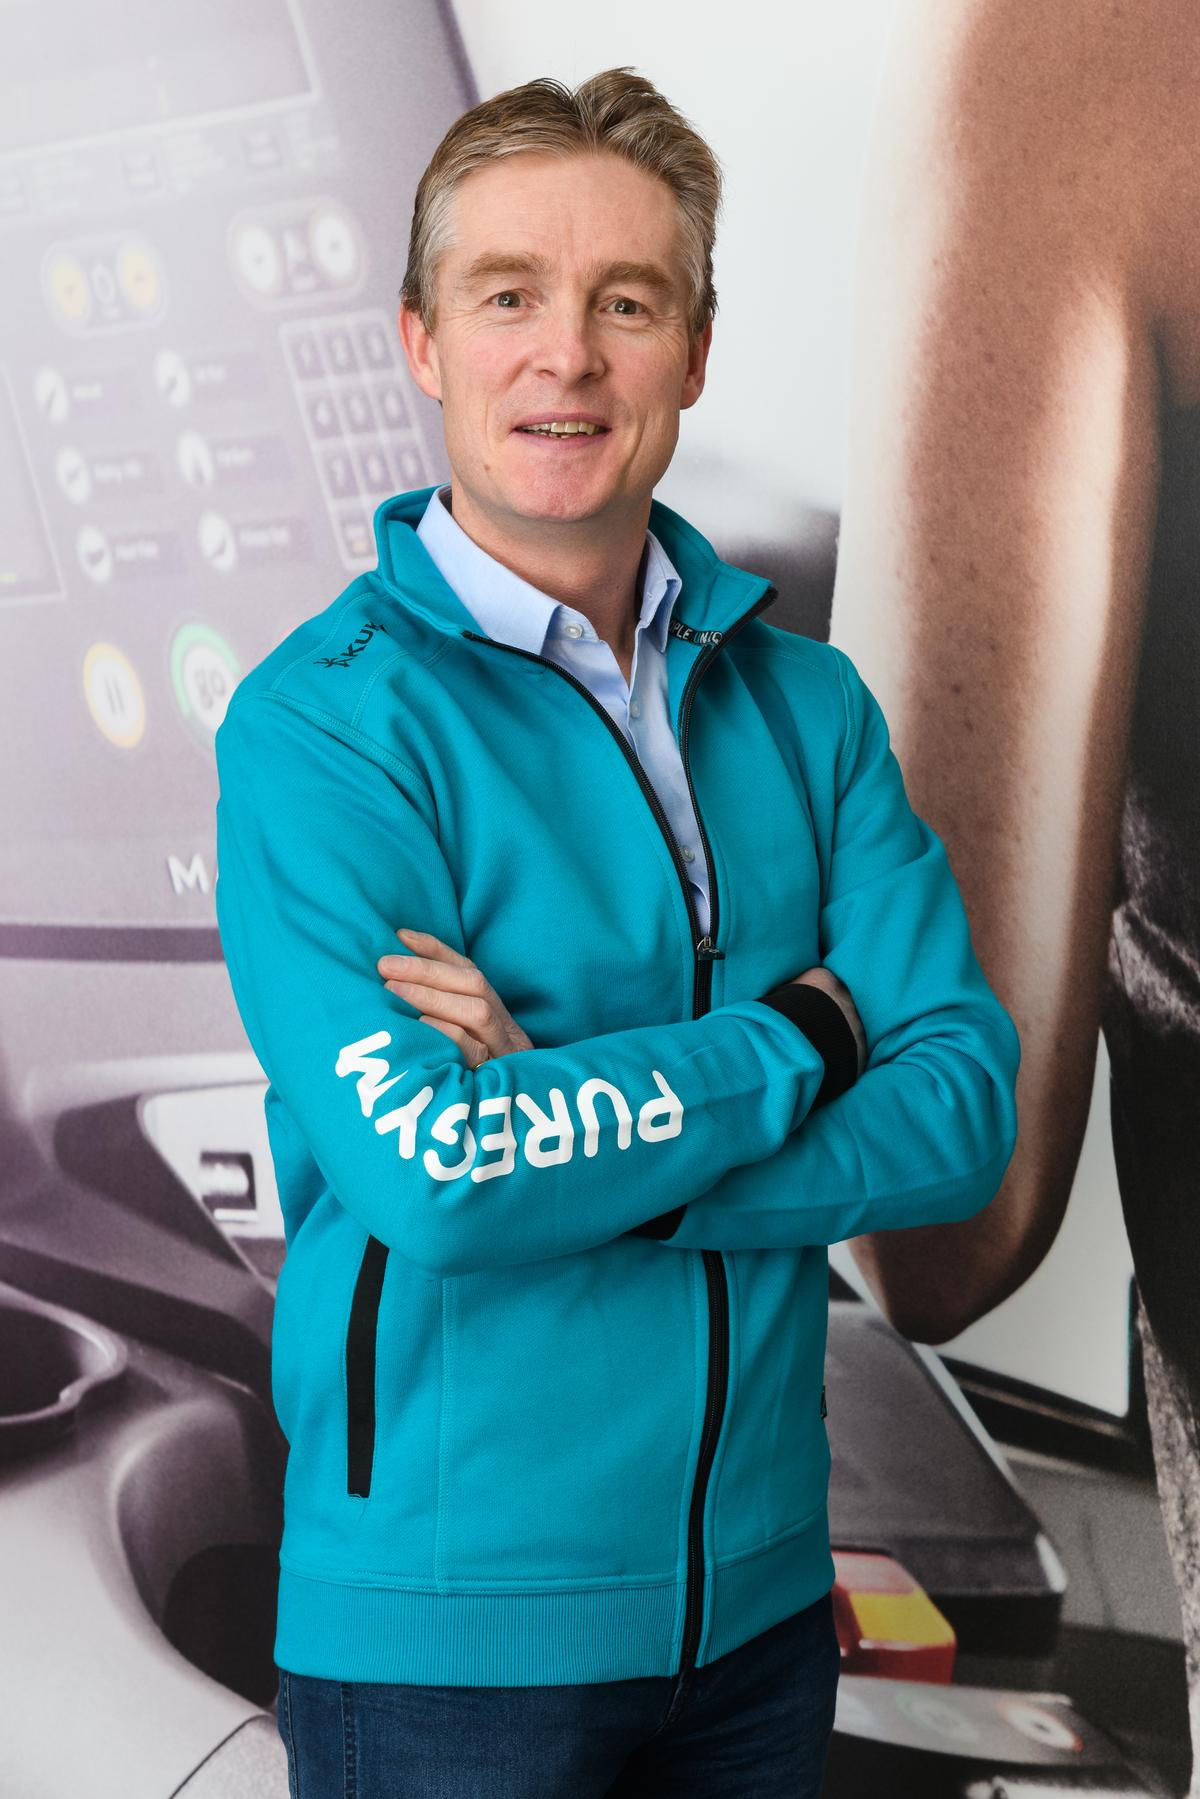 Cobbold has confirmed the closure of PureGym's Polish estate / PureGym